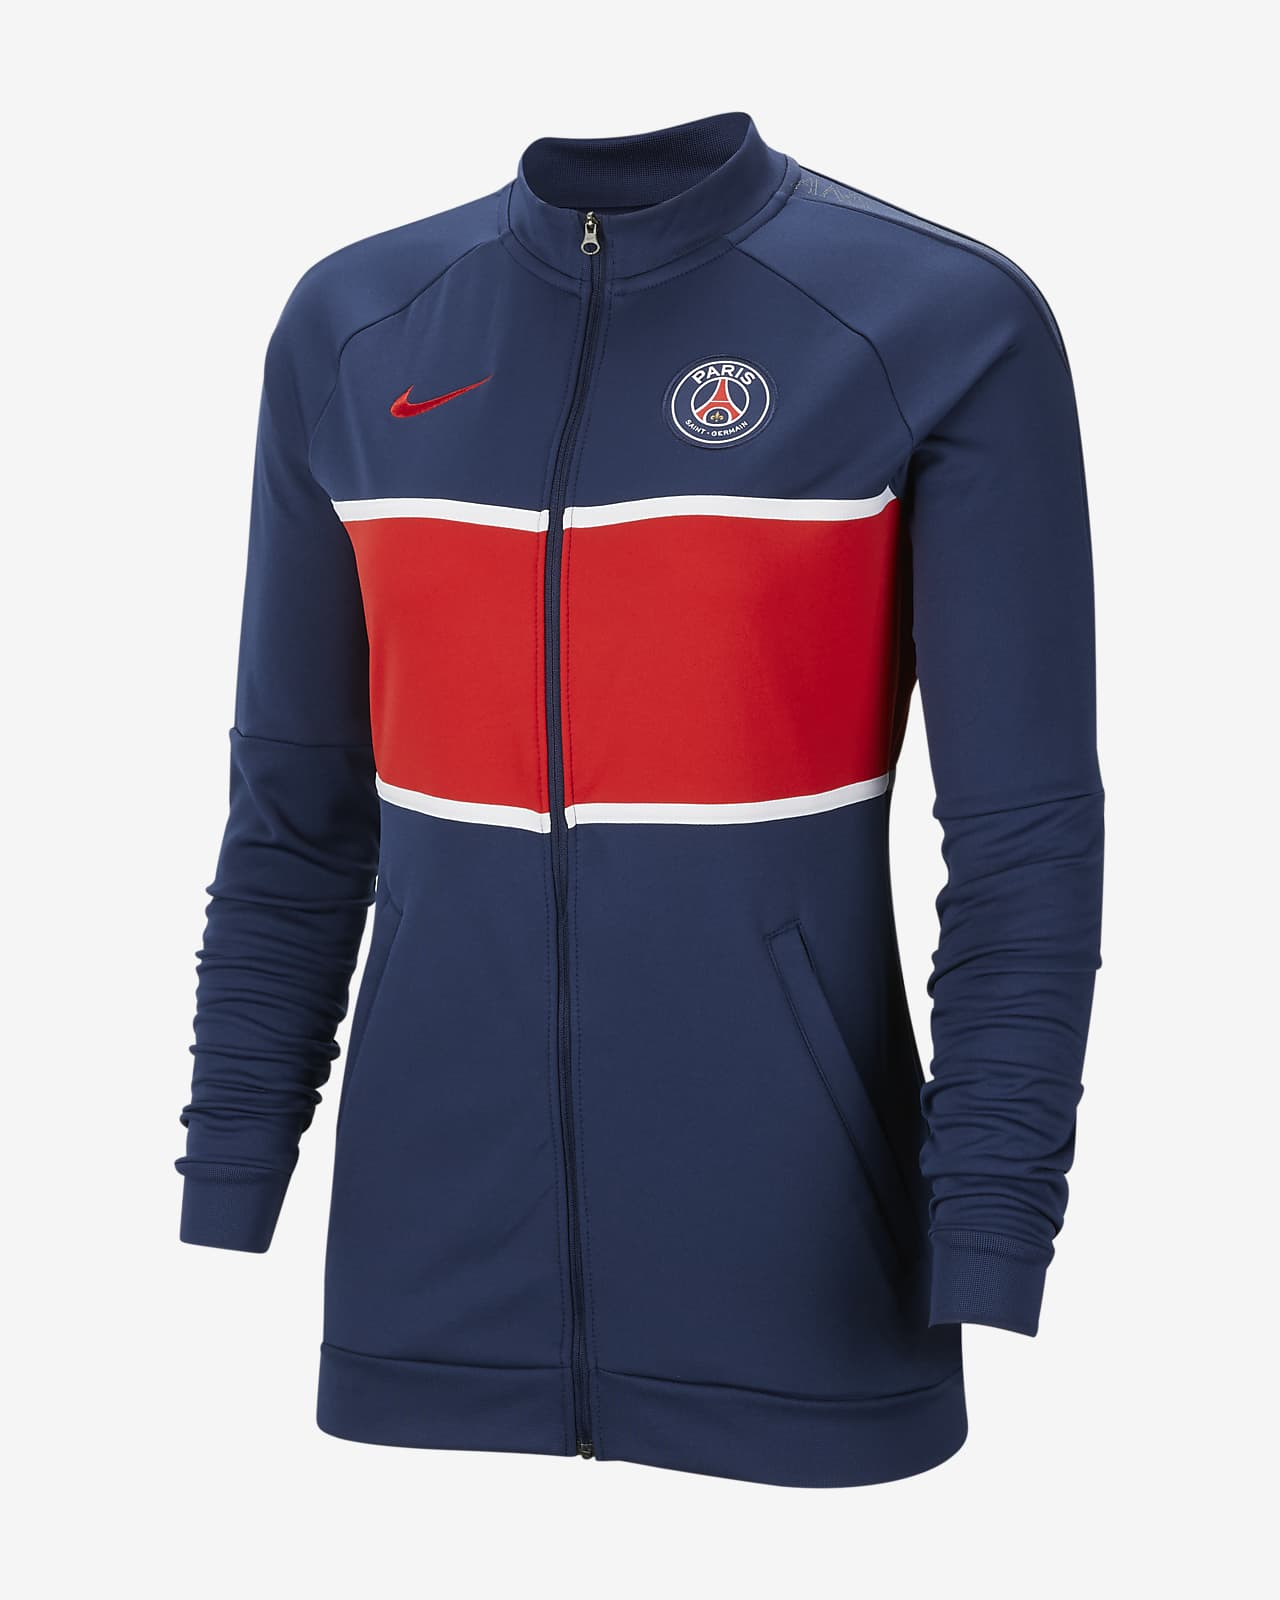 Veste de survêtement de football Paris Saint-Germain pour Femme